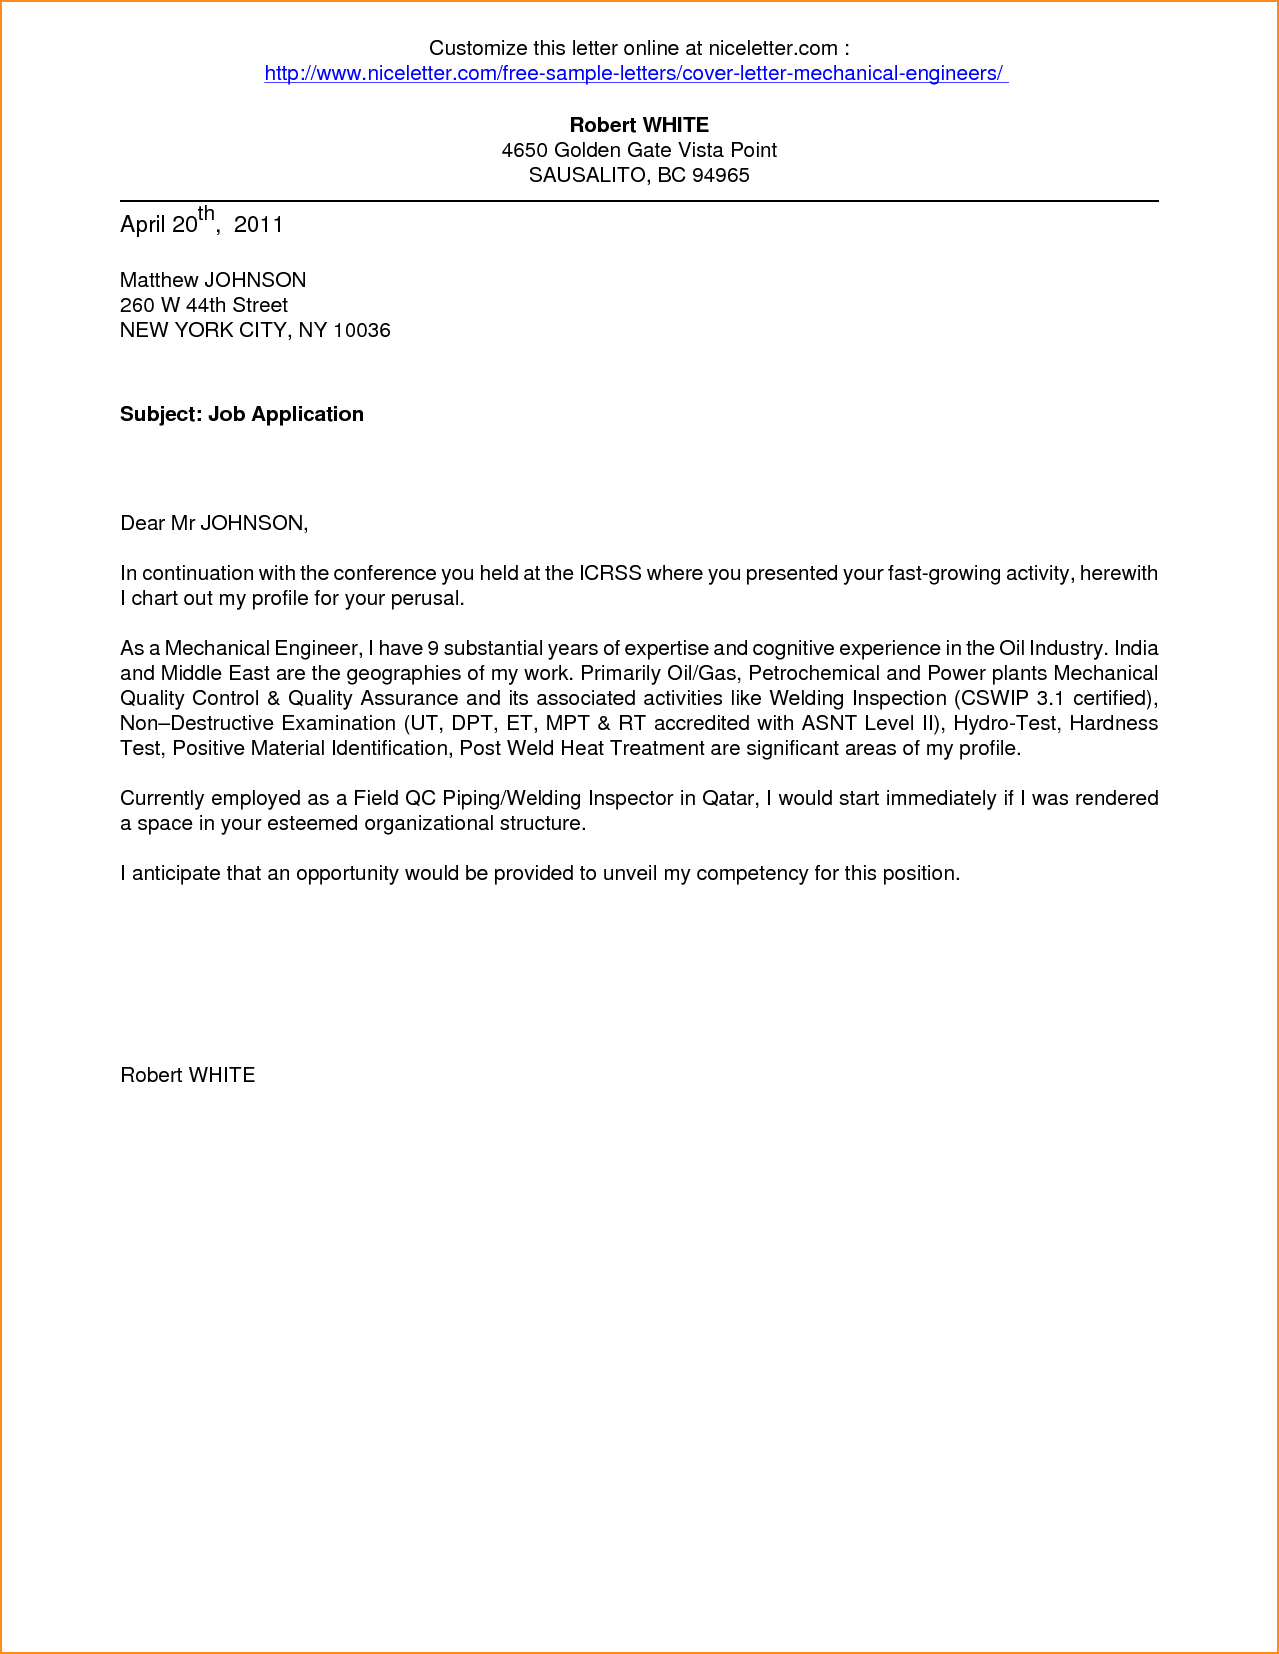 examples of a covering letter for a job application - application for employment cover letter application